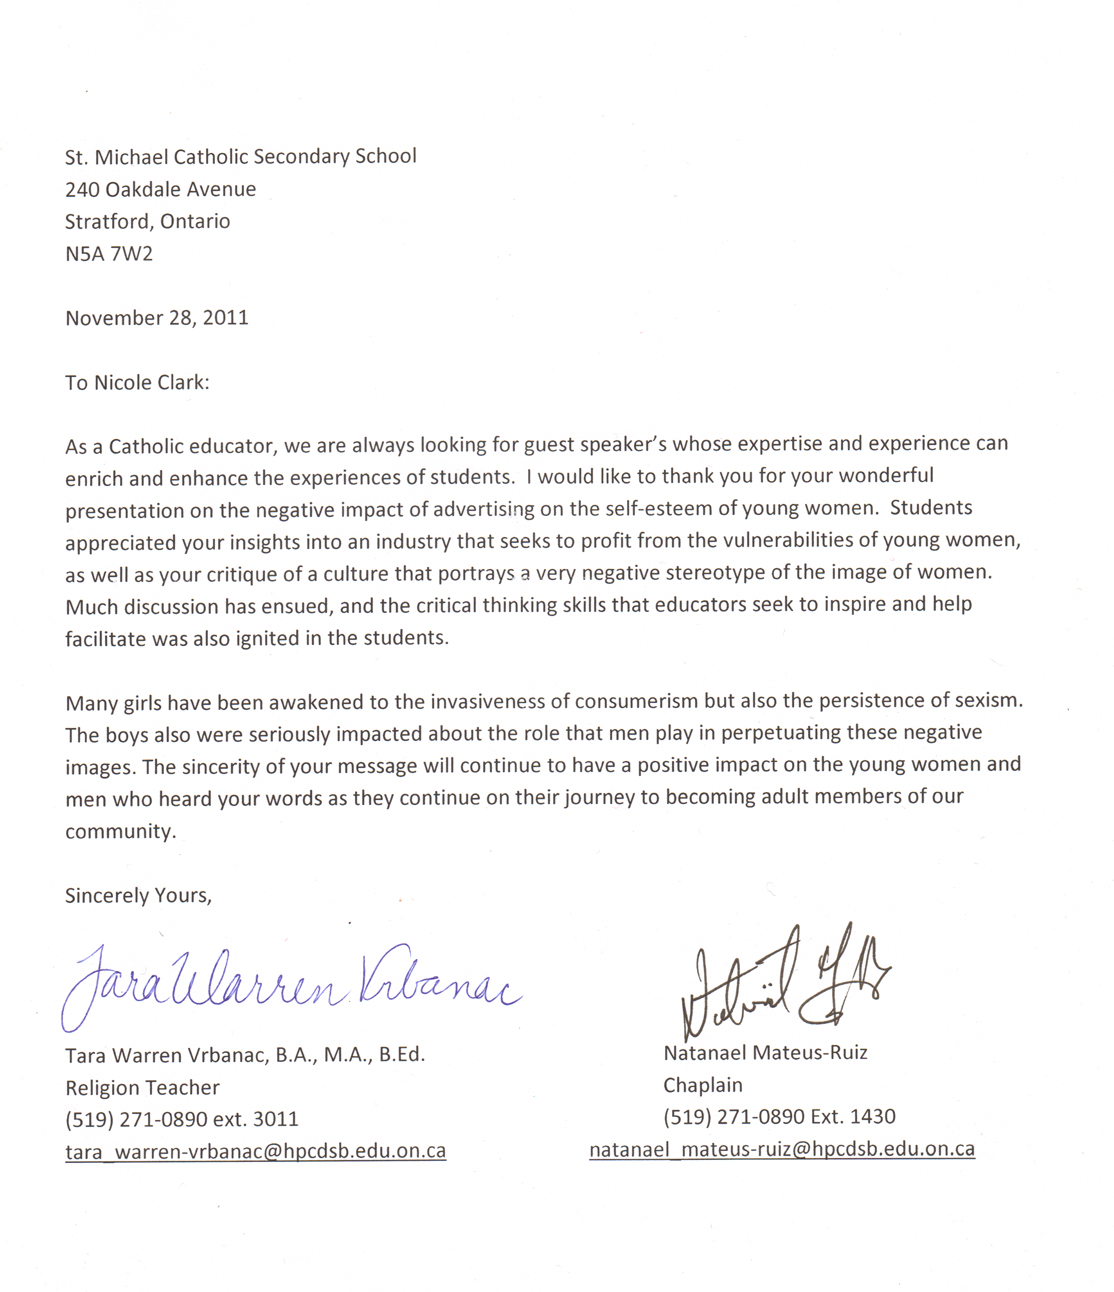 work experience letter of reference sample war work experience letter of reference sample letter of recommendation for teacher eduers letters of reference cover